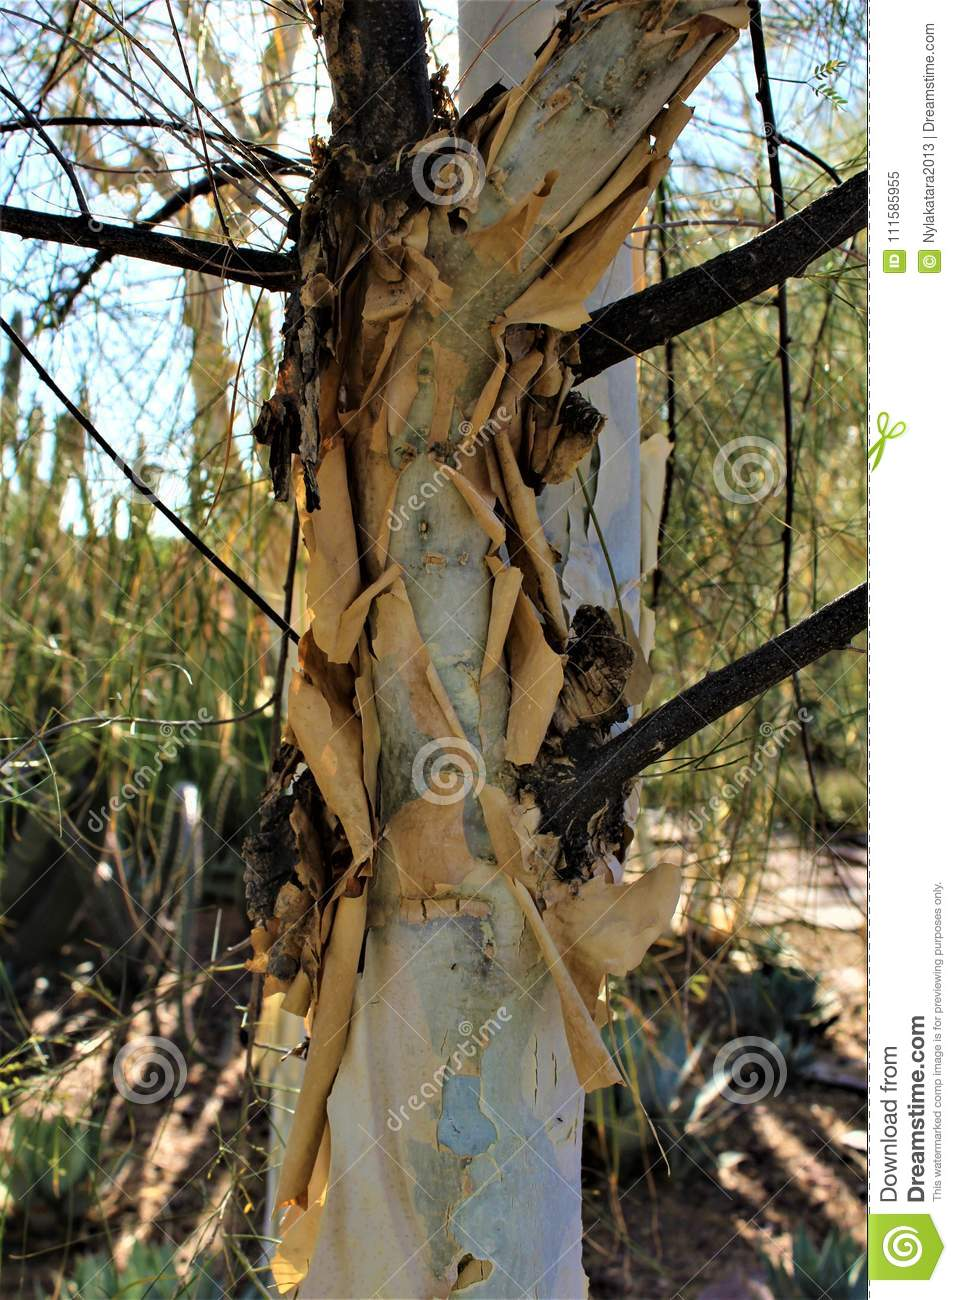 Desert Botanical Garden Phoenix Arizona Stock Image - Image of ...